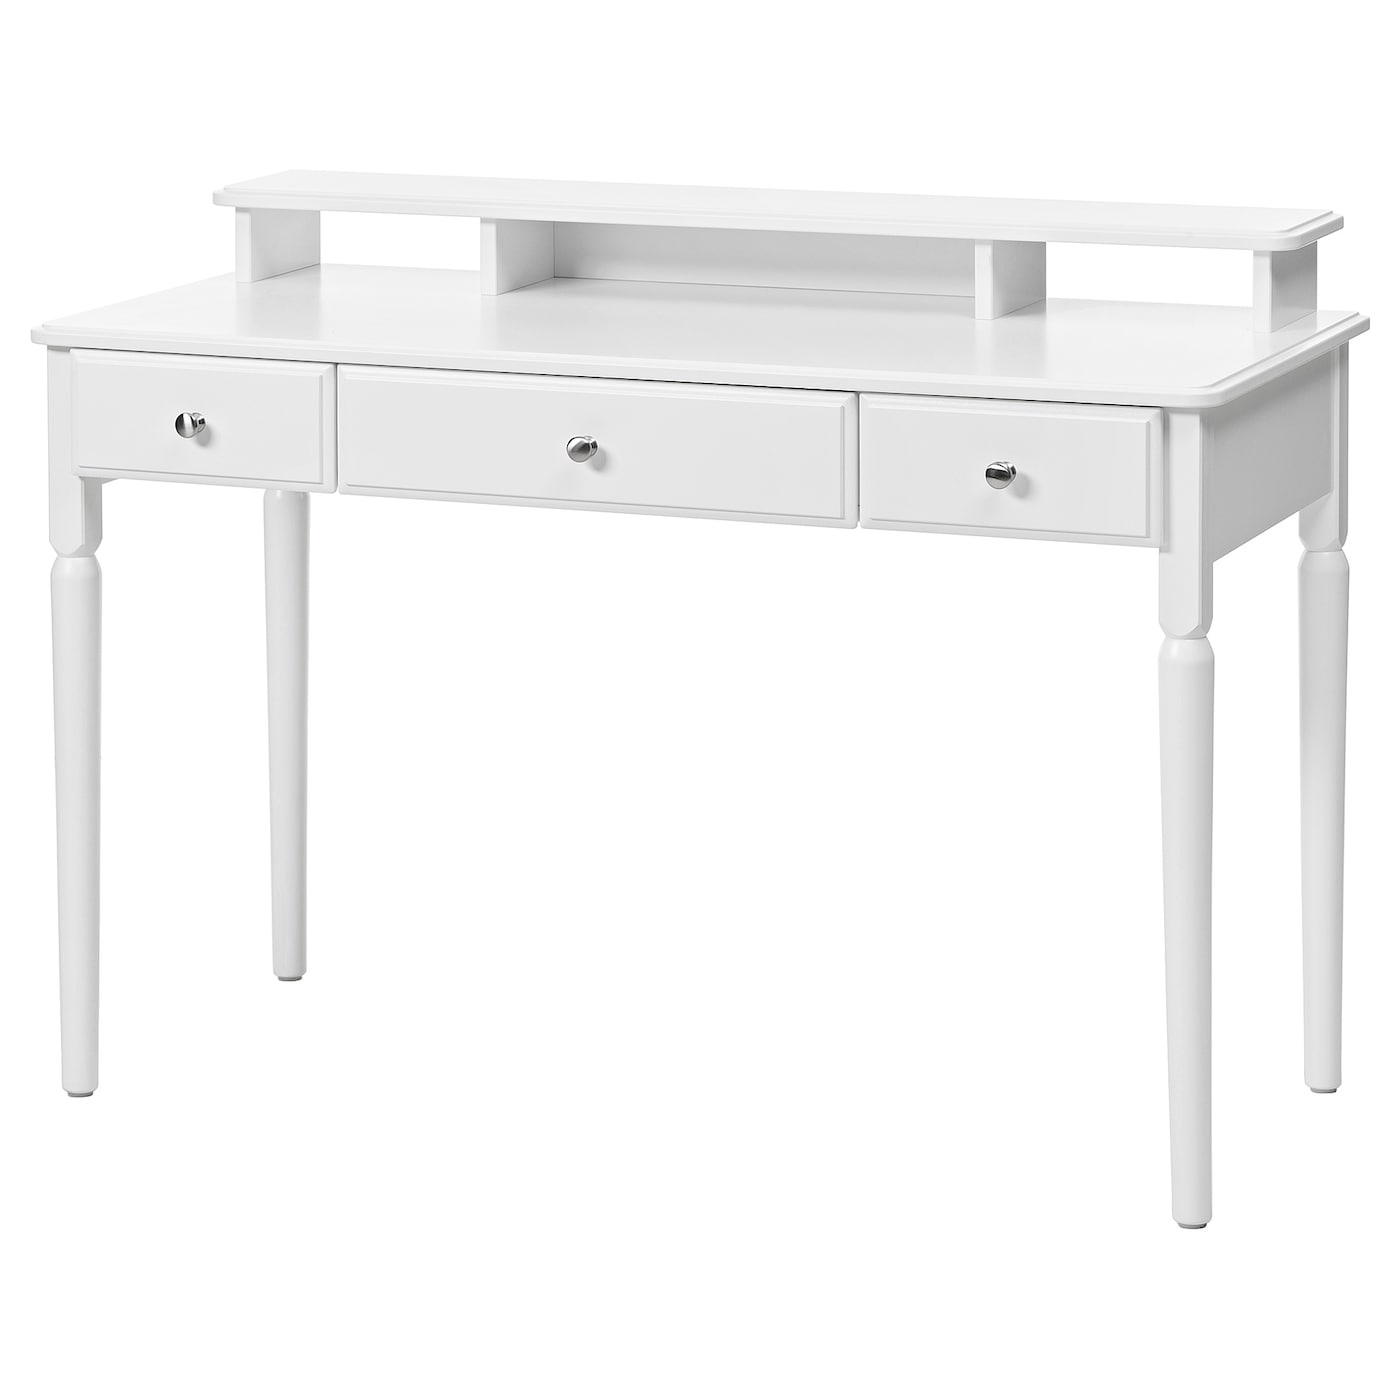 Tyssedal Dressing Table White Ikea